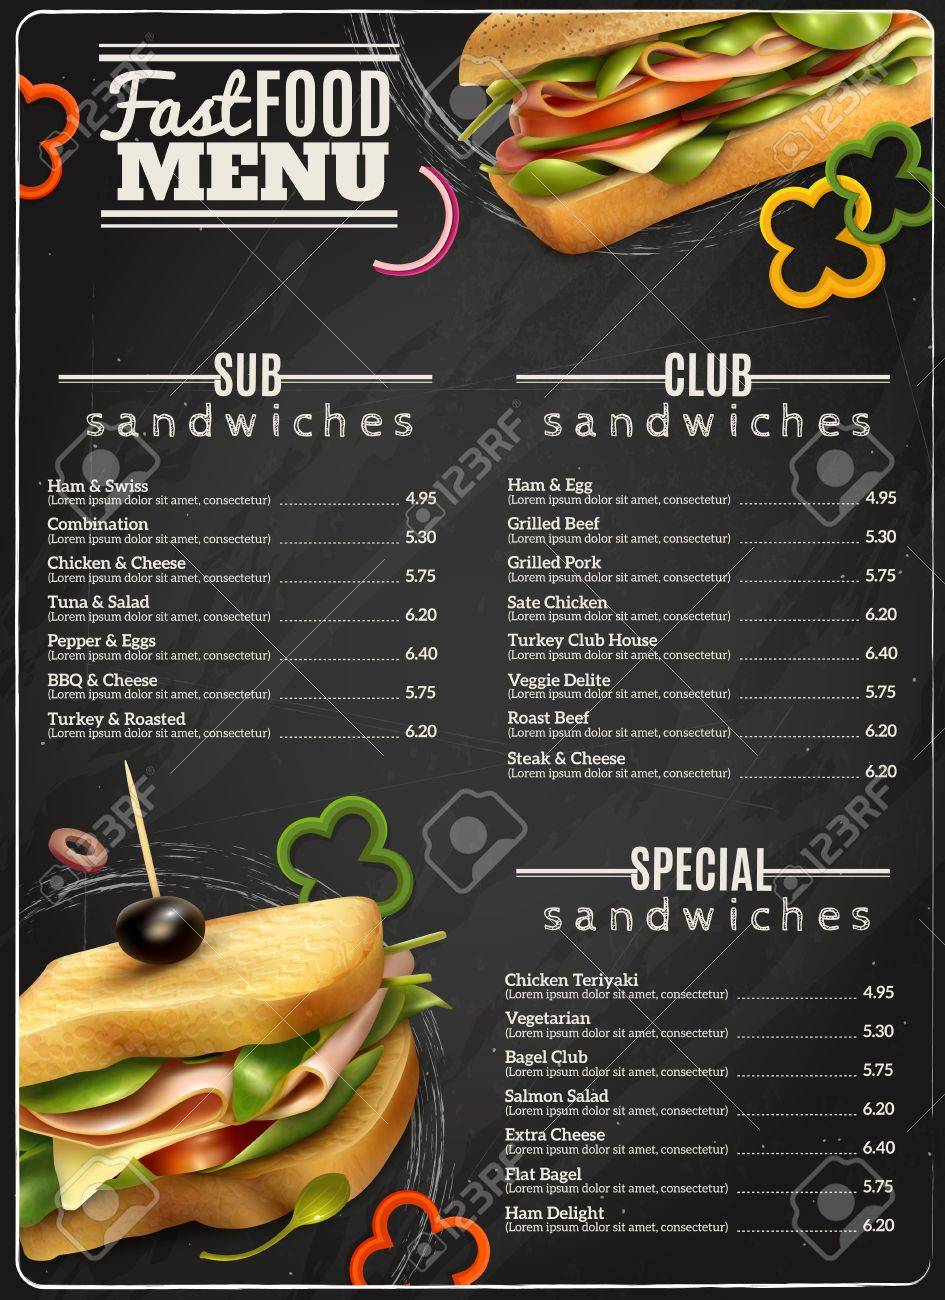 Fast Food Cafe Healthy Options Wholegrain Wheat Multigrain Sandwiches Blackboard Menu Realistic Advertisement Poster Print Vector